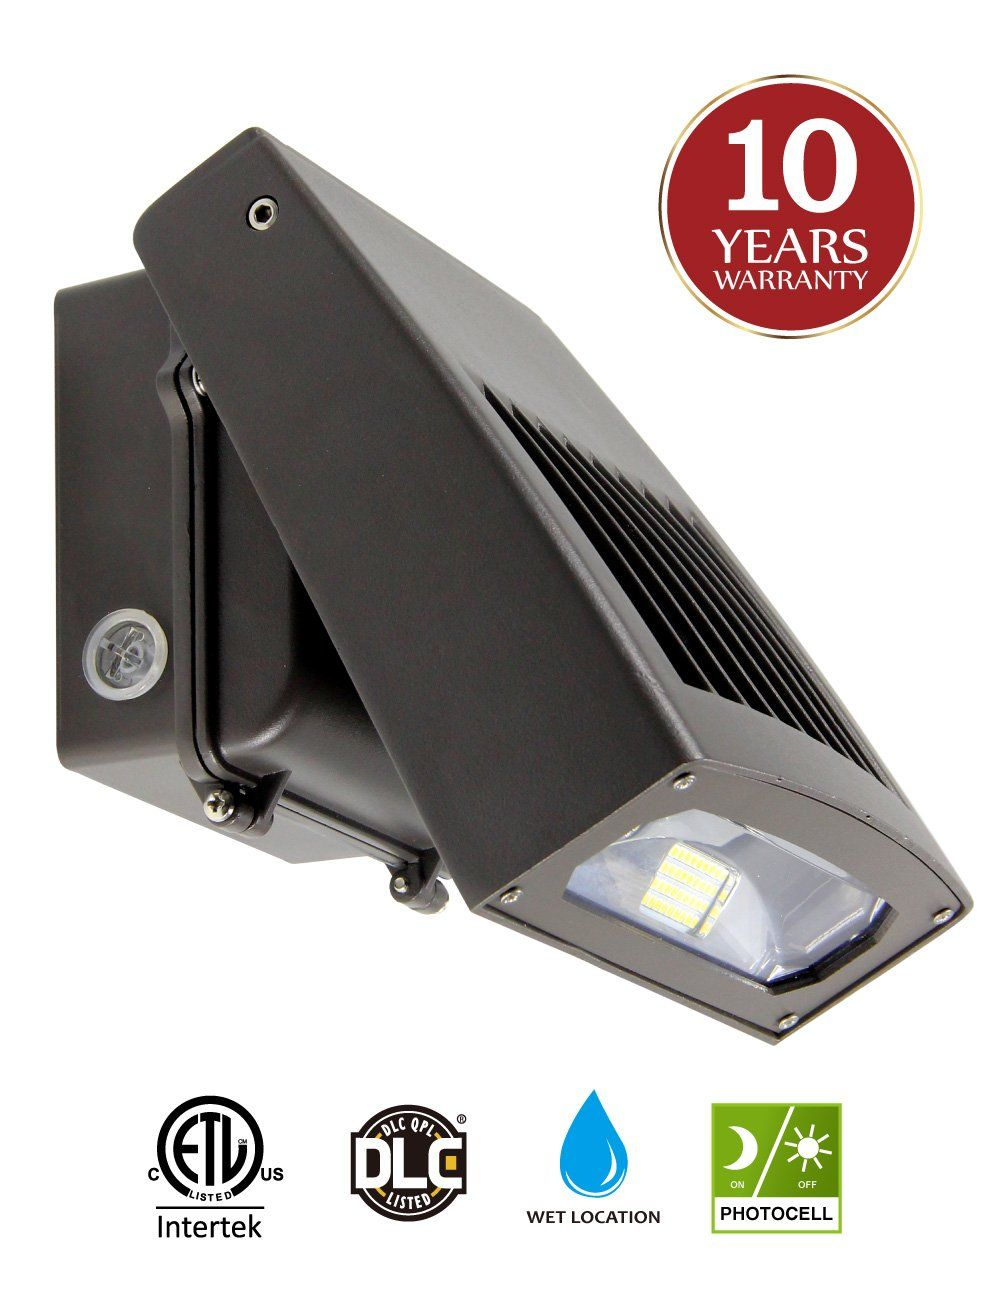 30w Led Wall Pack Light With Dusk To Dawn Photocell 0 90 Adjule Head Waterproof Outdoor Lighting Fixture 150 250w Hps Hid Replacement 5000k 3300lm